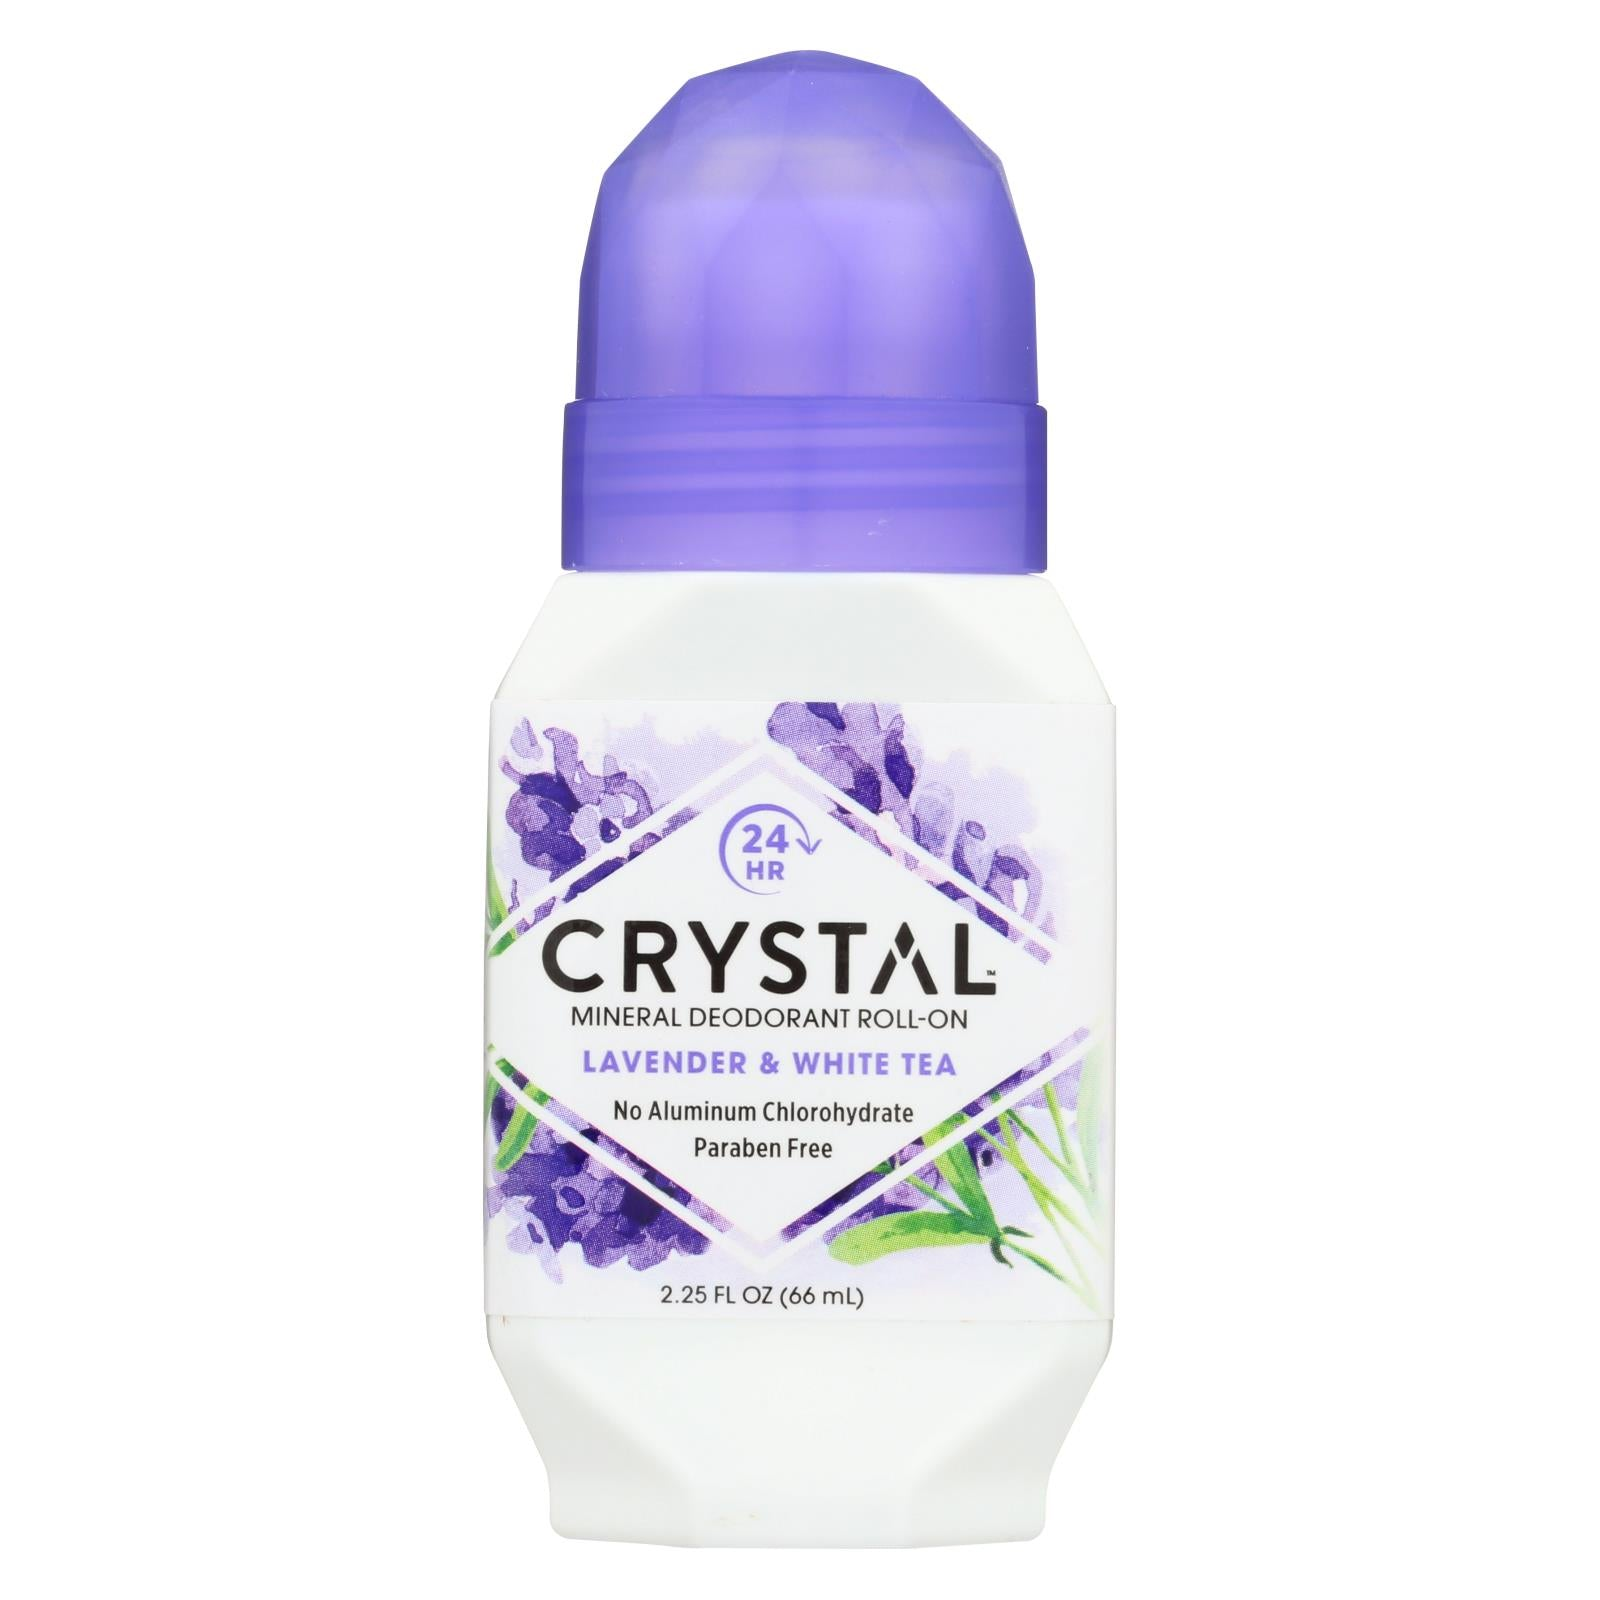 Buy Crystal Essence Roll On Deodorant Lavender and White Tea - 2.25 fl oz - Deodorants from Veroeco.com